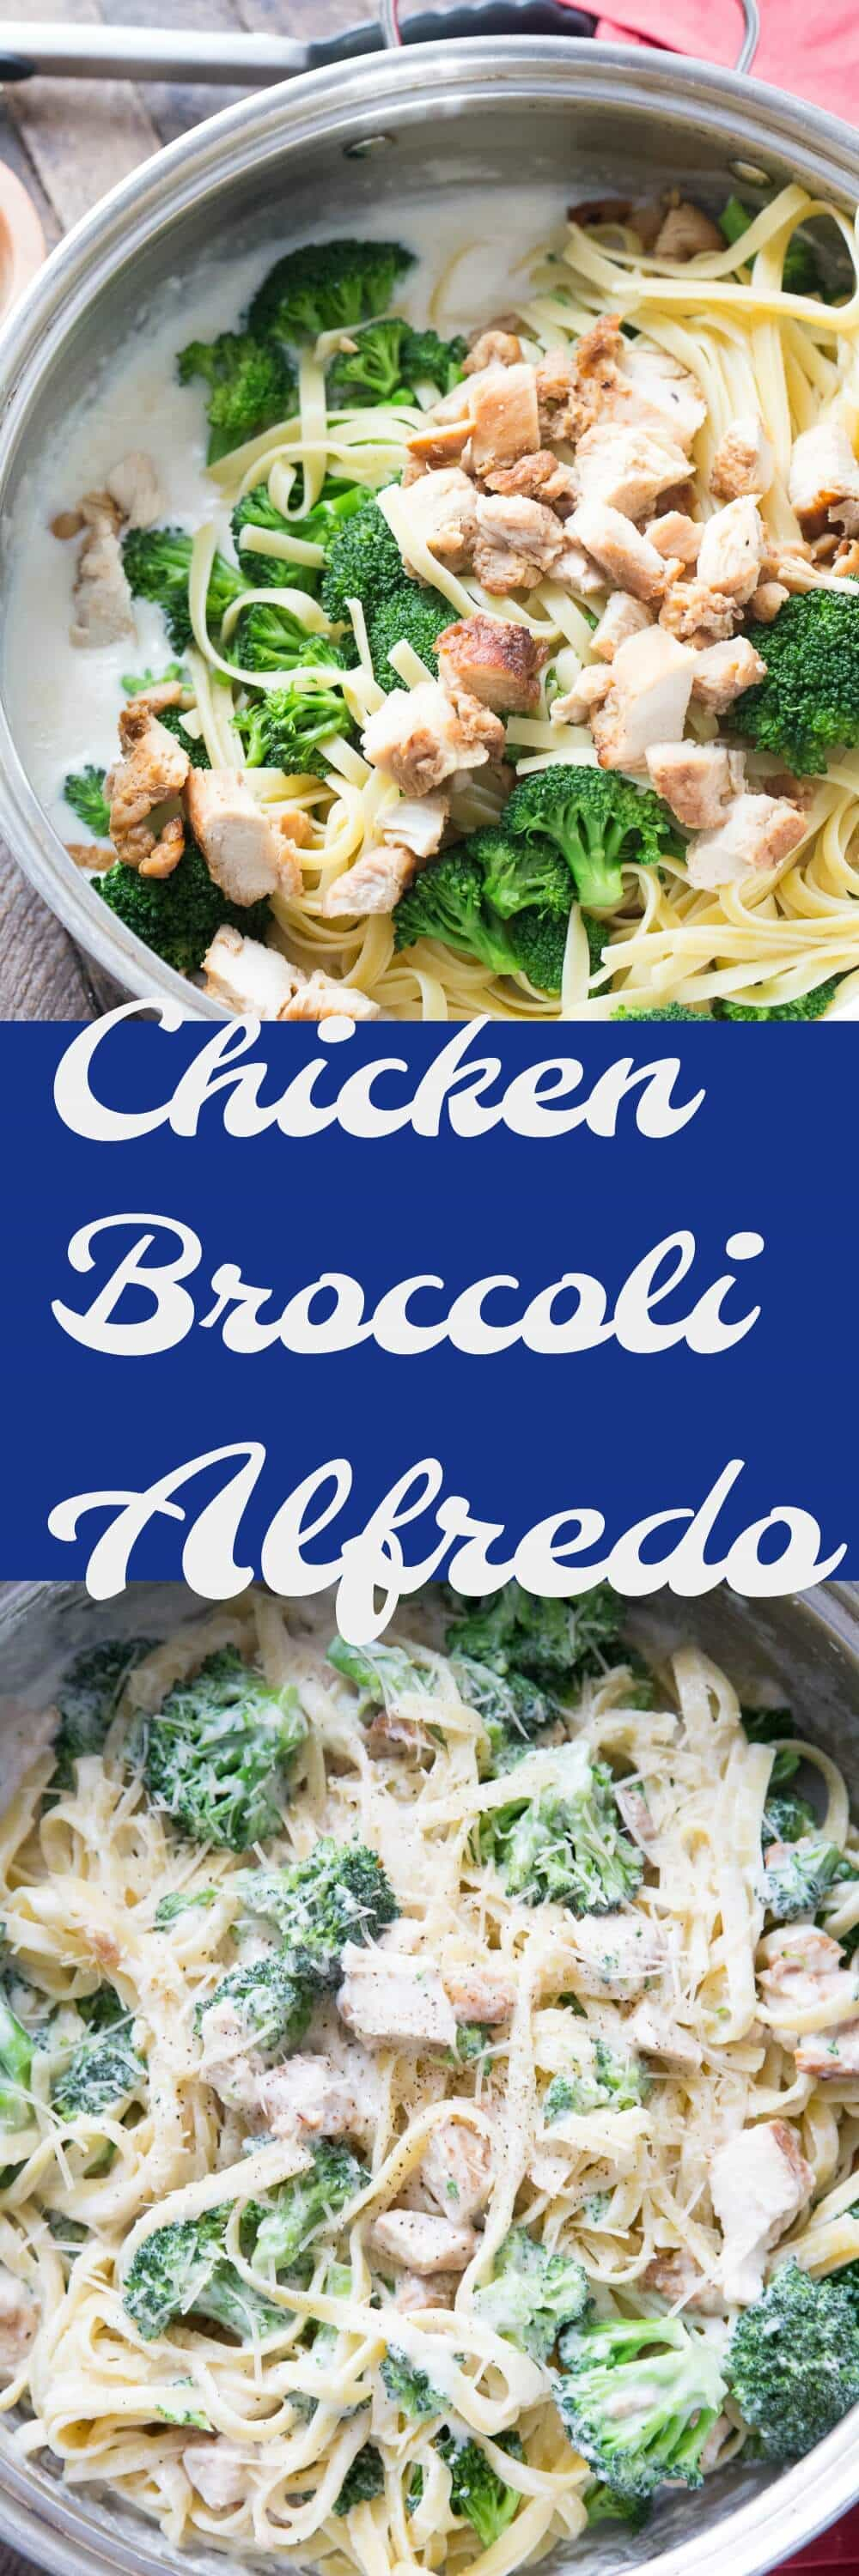 What's not to love about chicken broccoli alfredo? It's rich tasting, creamy and delicious! It's simple too! Oh and it's light!